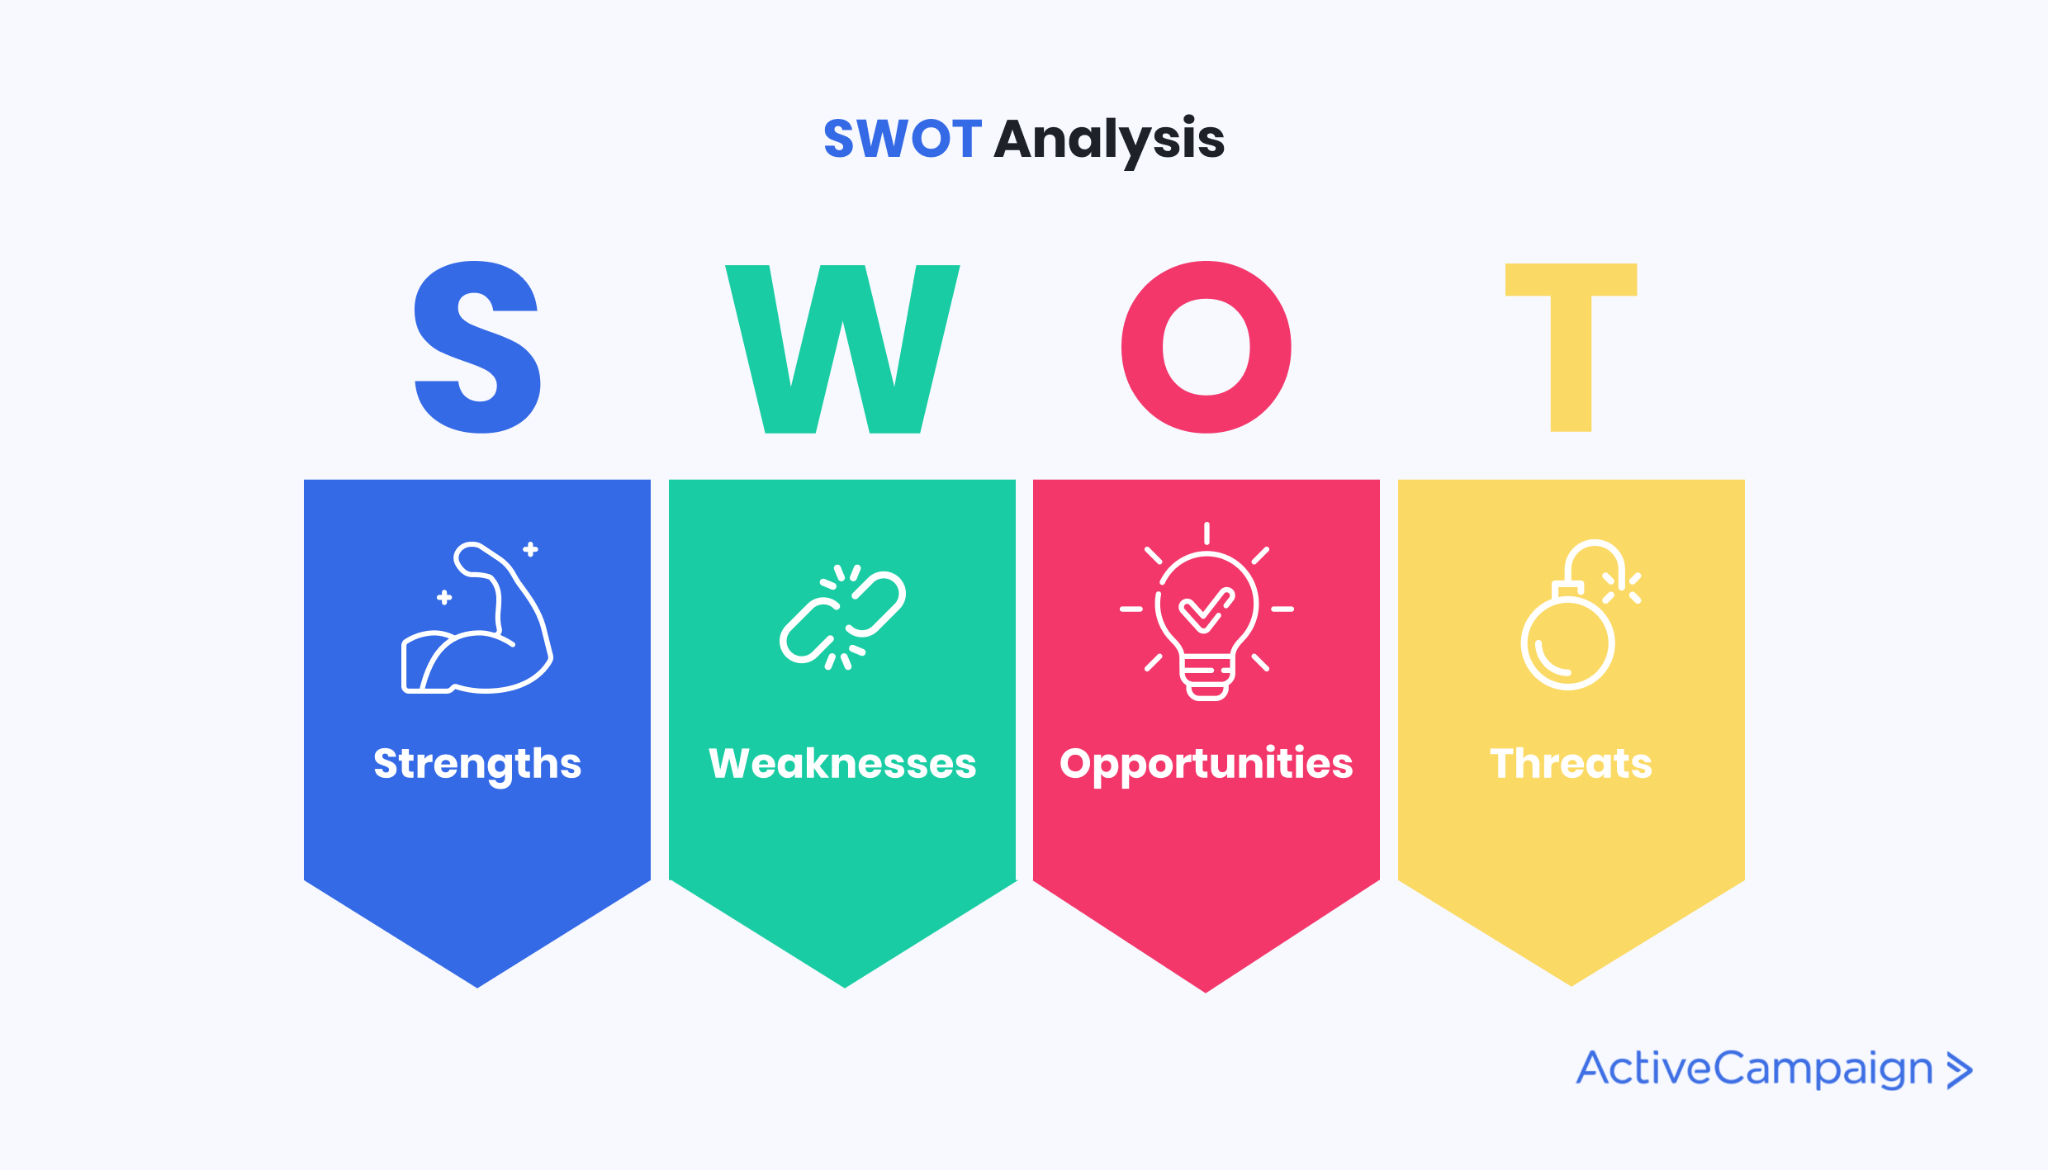 Image of a SWOT analysis template